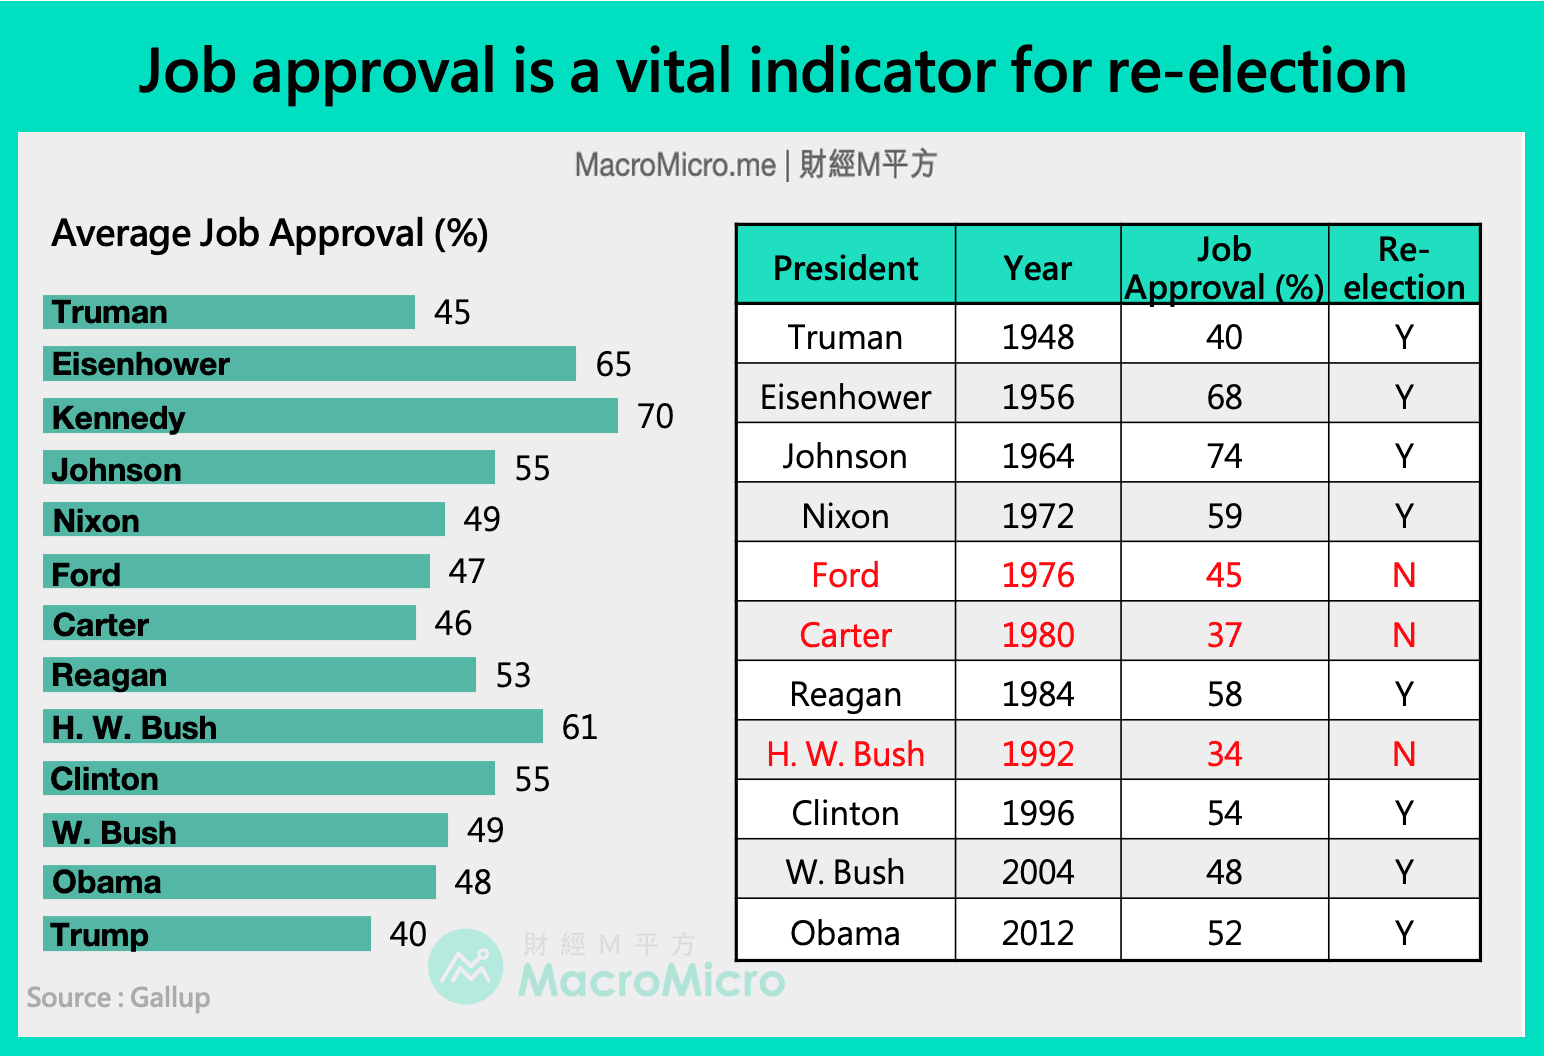 Job approval rate is a vital indicator for re-election.